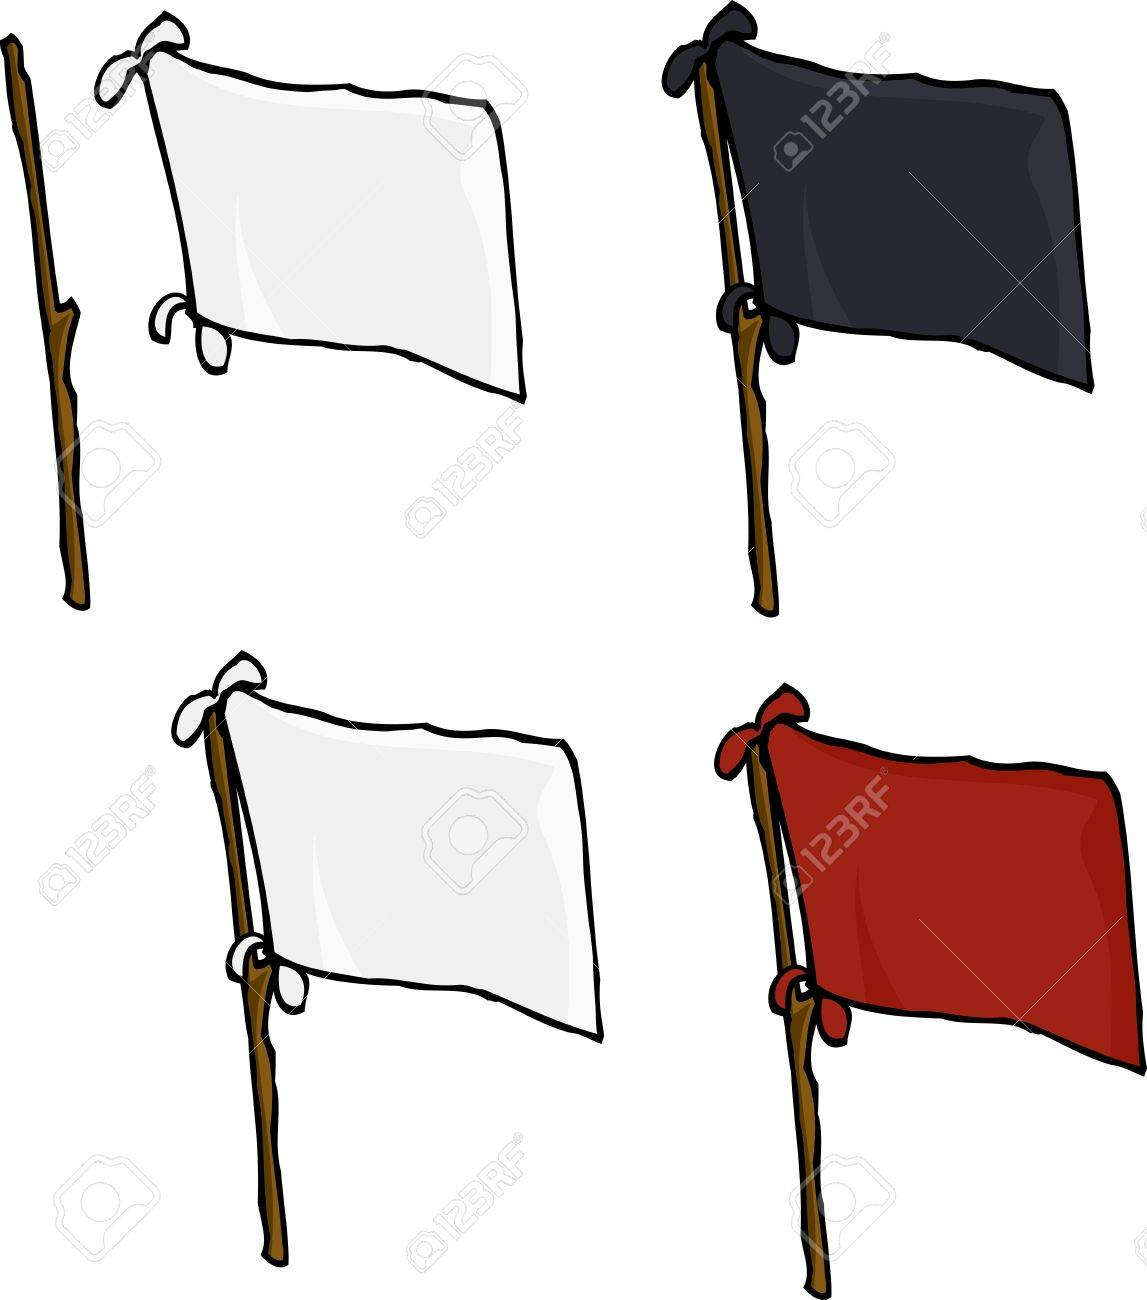 Blank flags made from sheets on stick over white background Stock Vector - 17619345